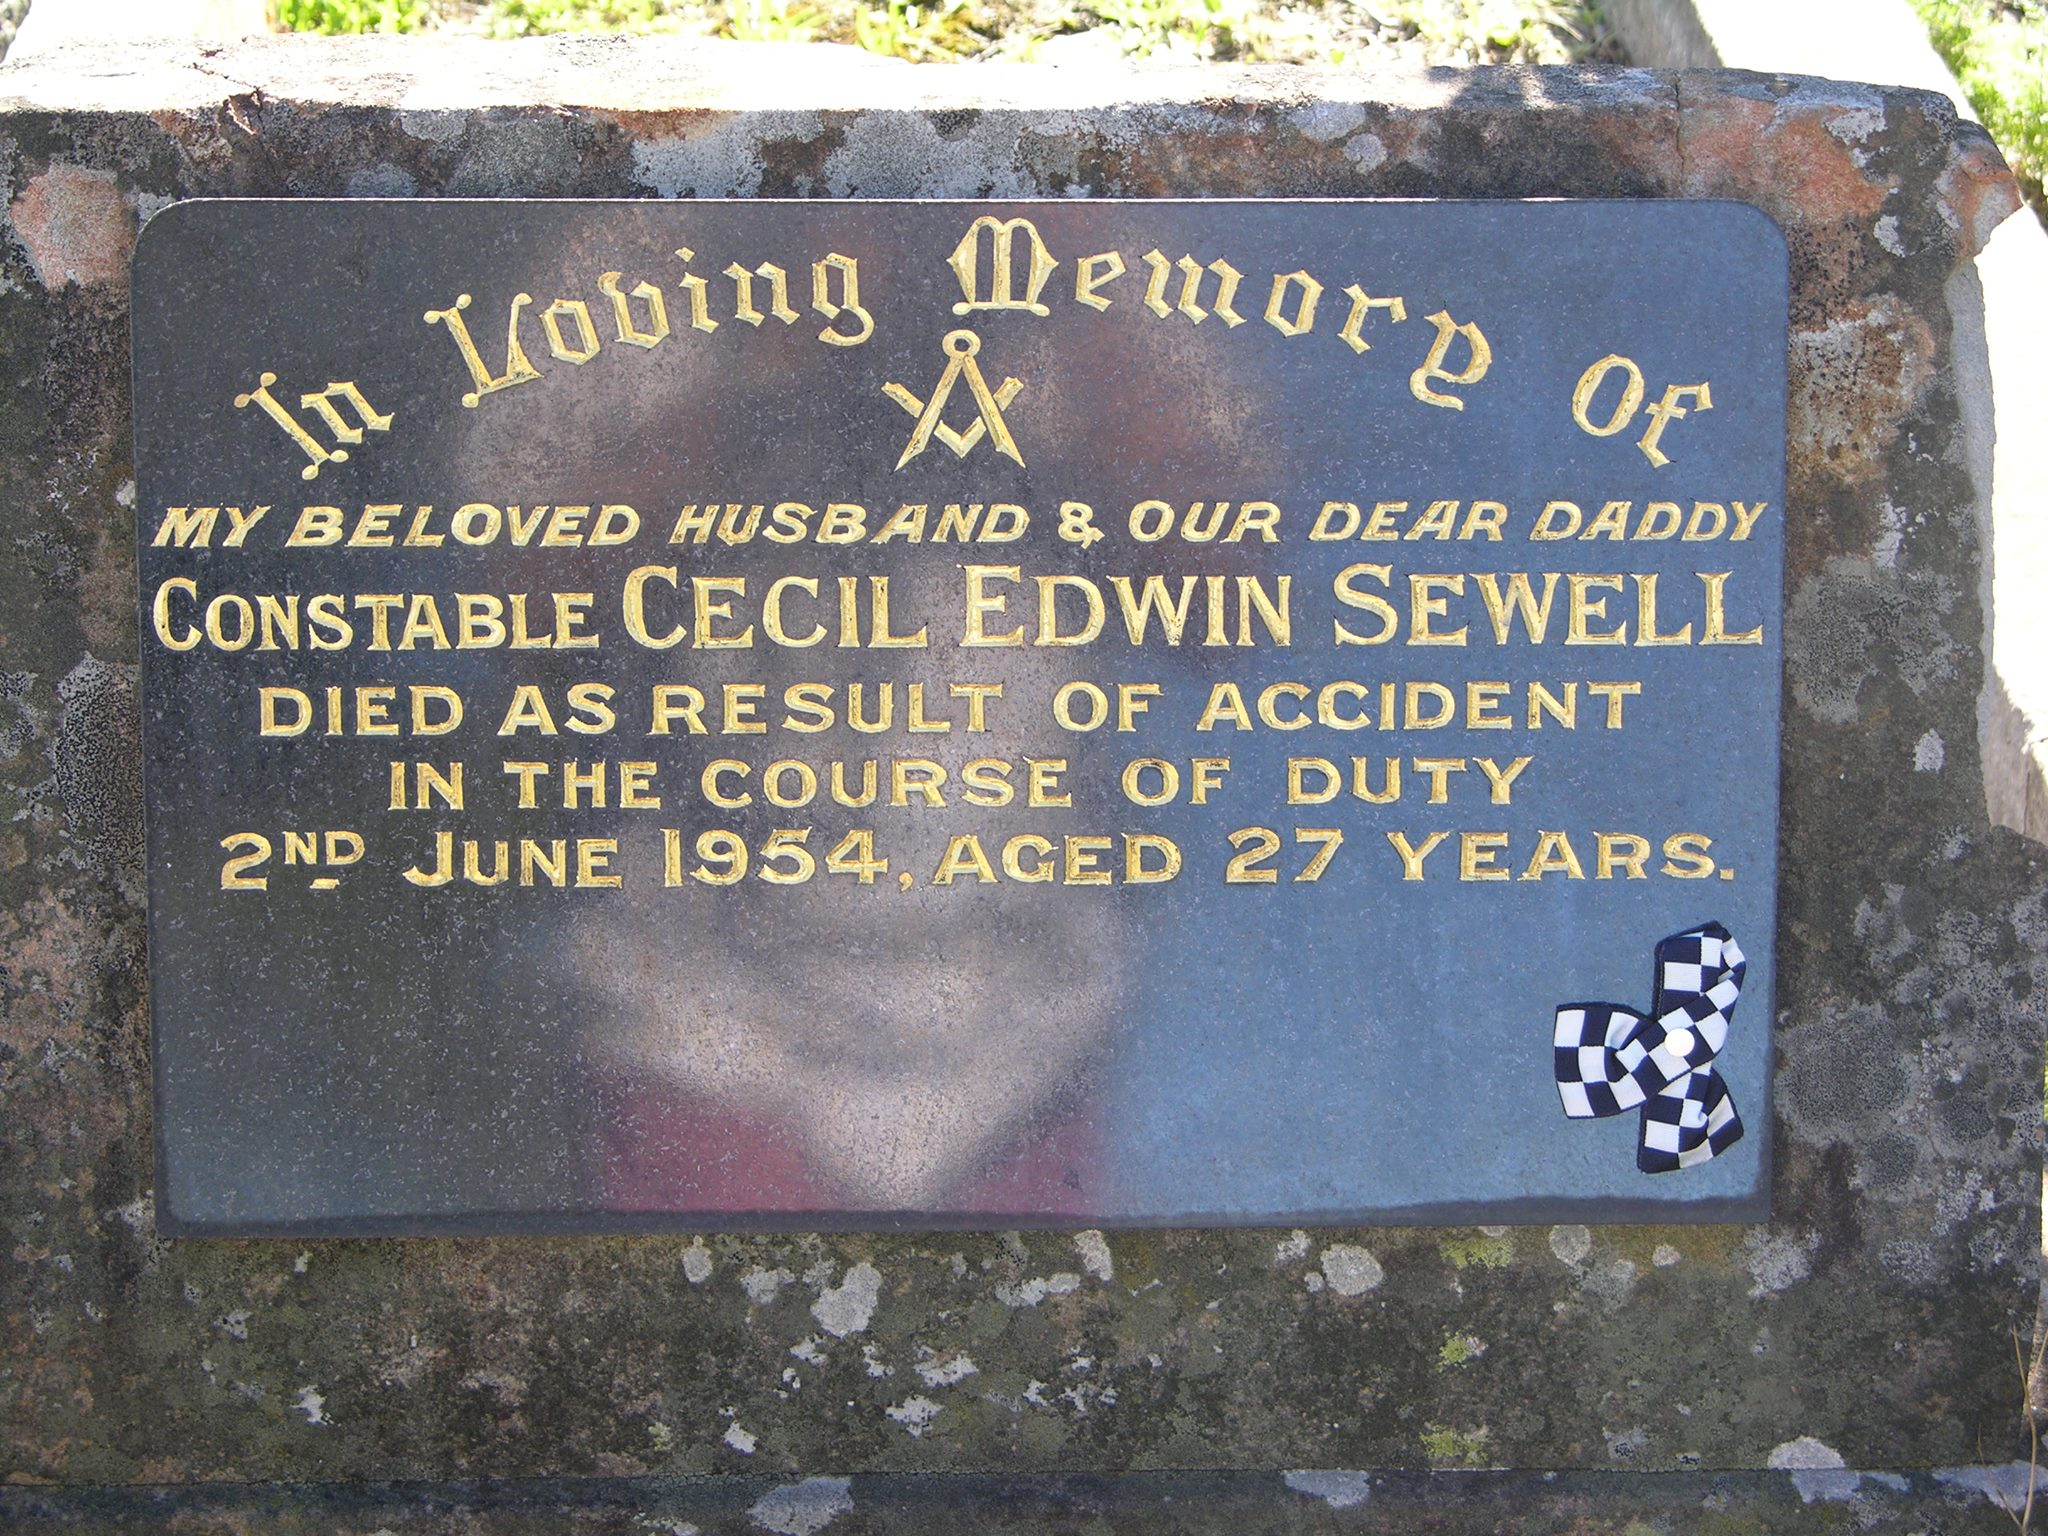 In Loving Memory of my beloved Husband & our dear Daddy. Constable Cecil Edwin SEWELL died as result of accident in the course of duty. 2nd June 1954. Aged 27 years.